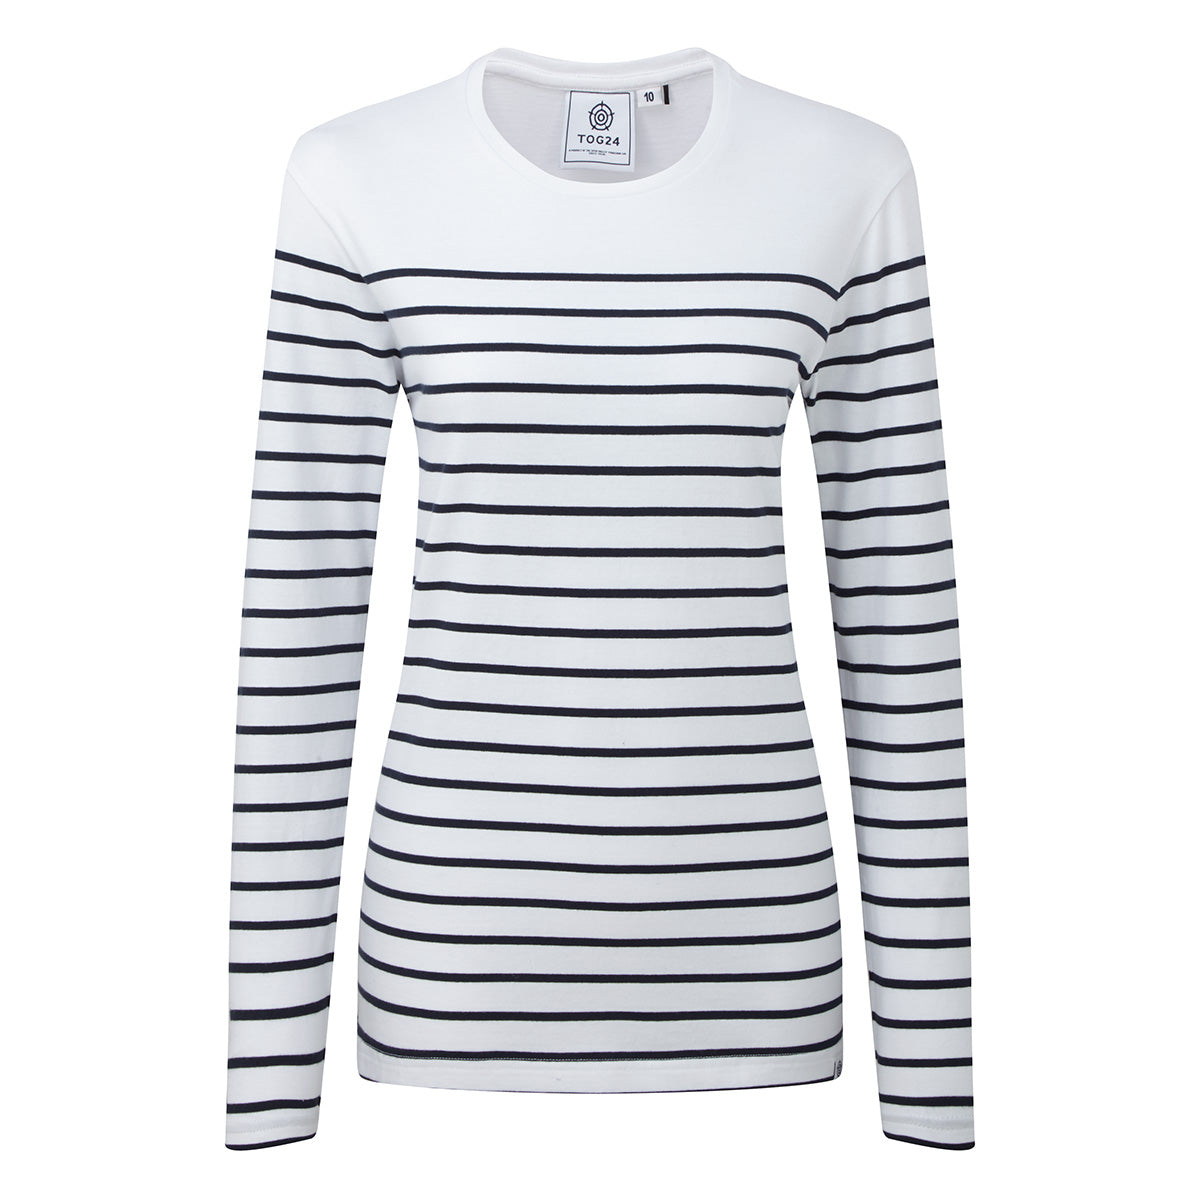 Betsy Womens Long Sleeve Stripe T-Shirt - White/Indigo image 4